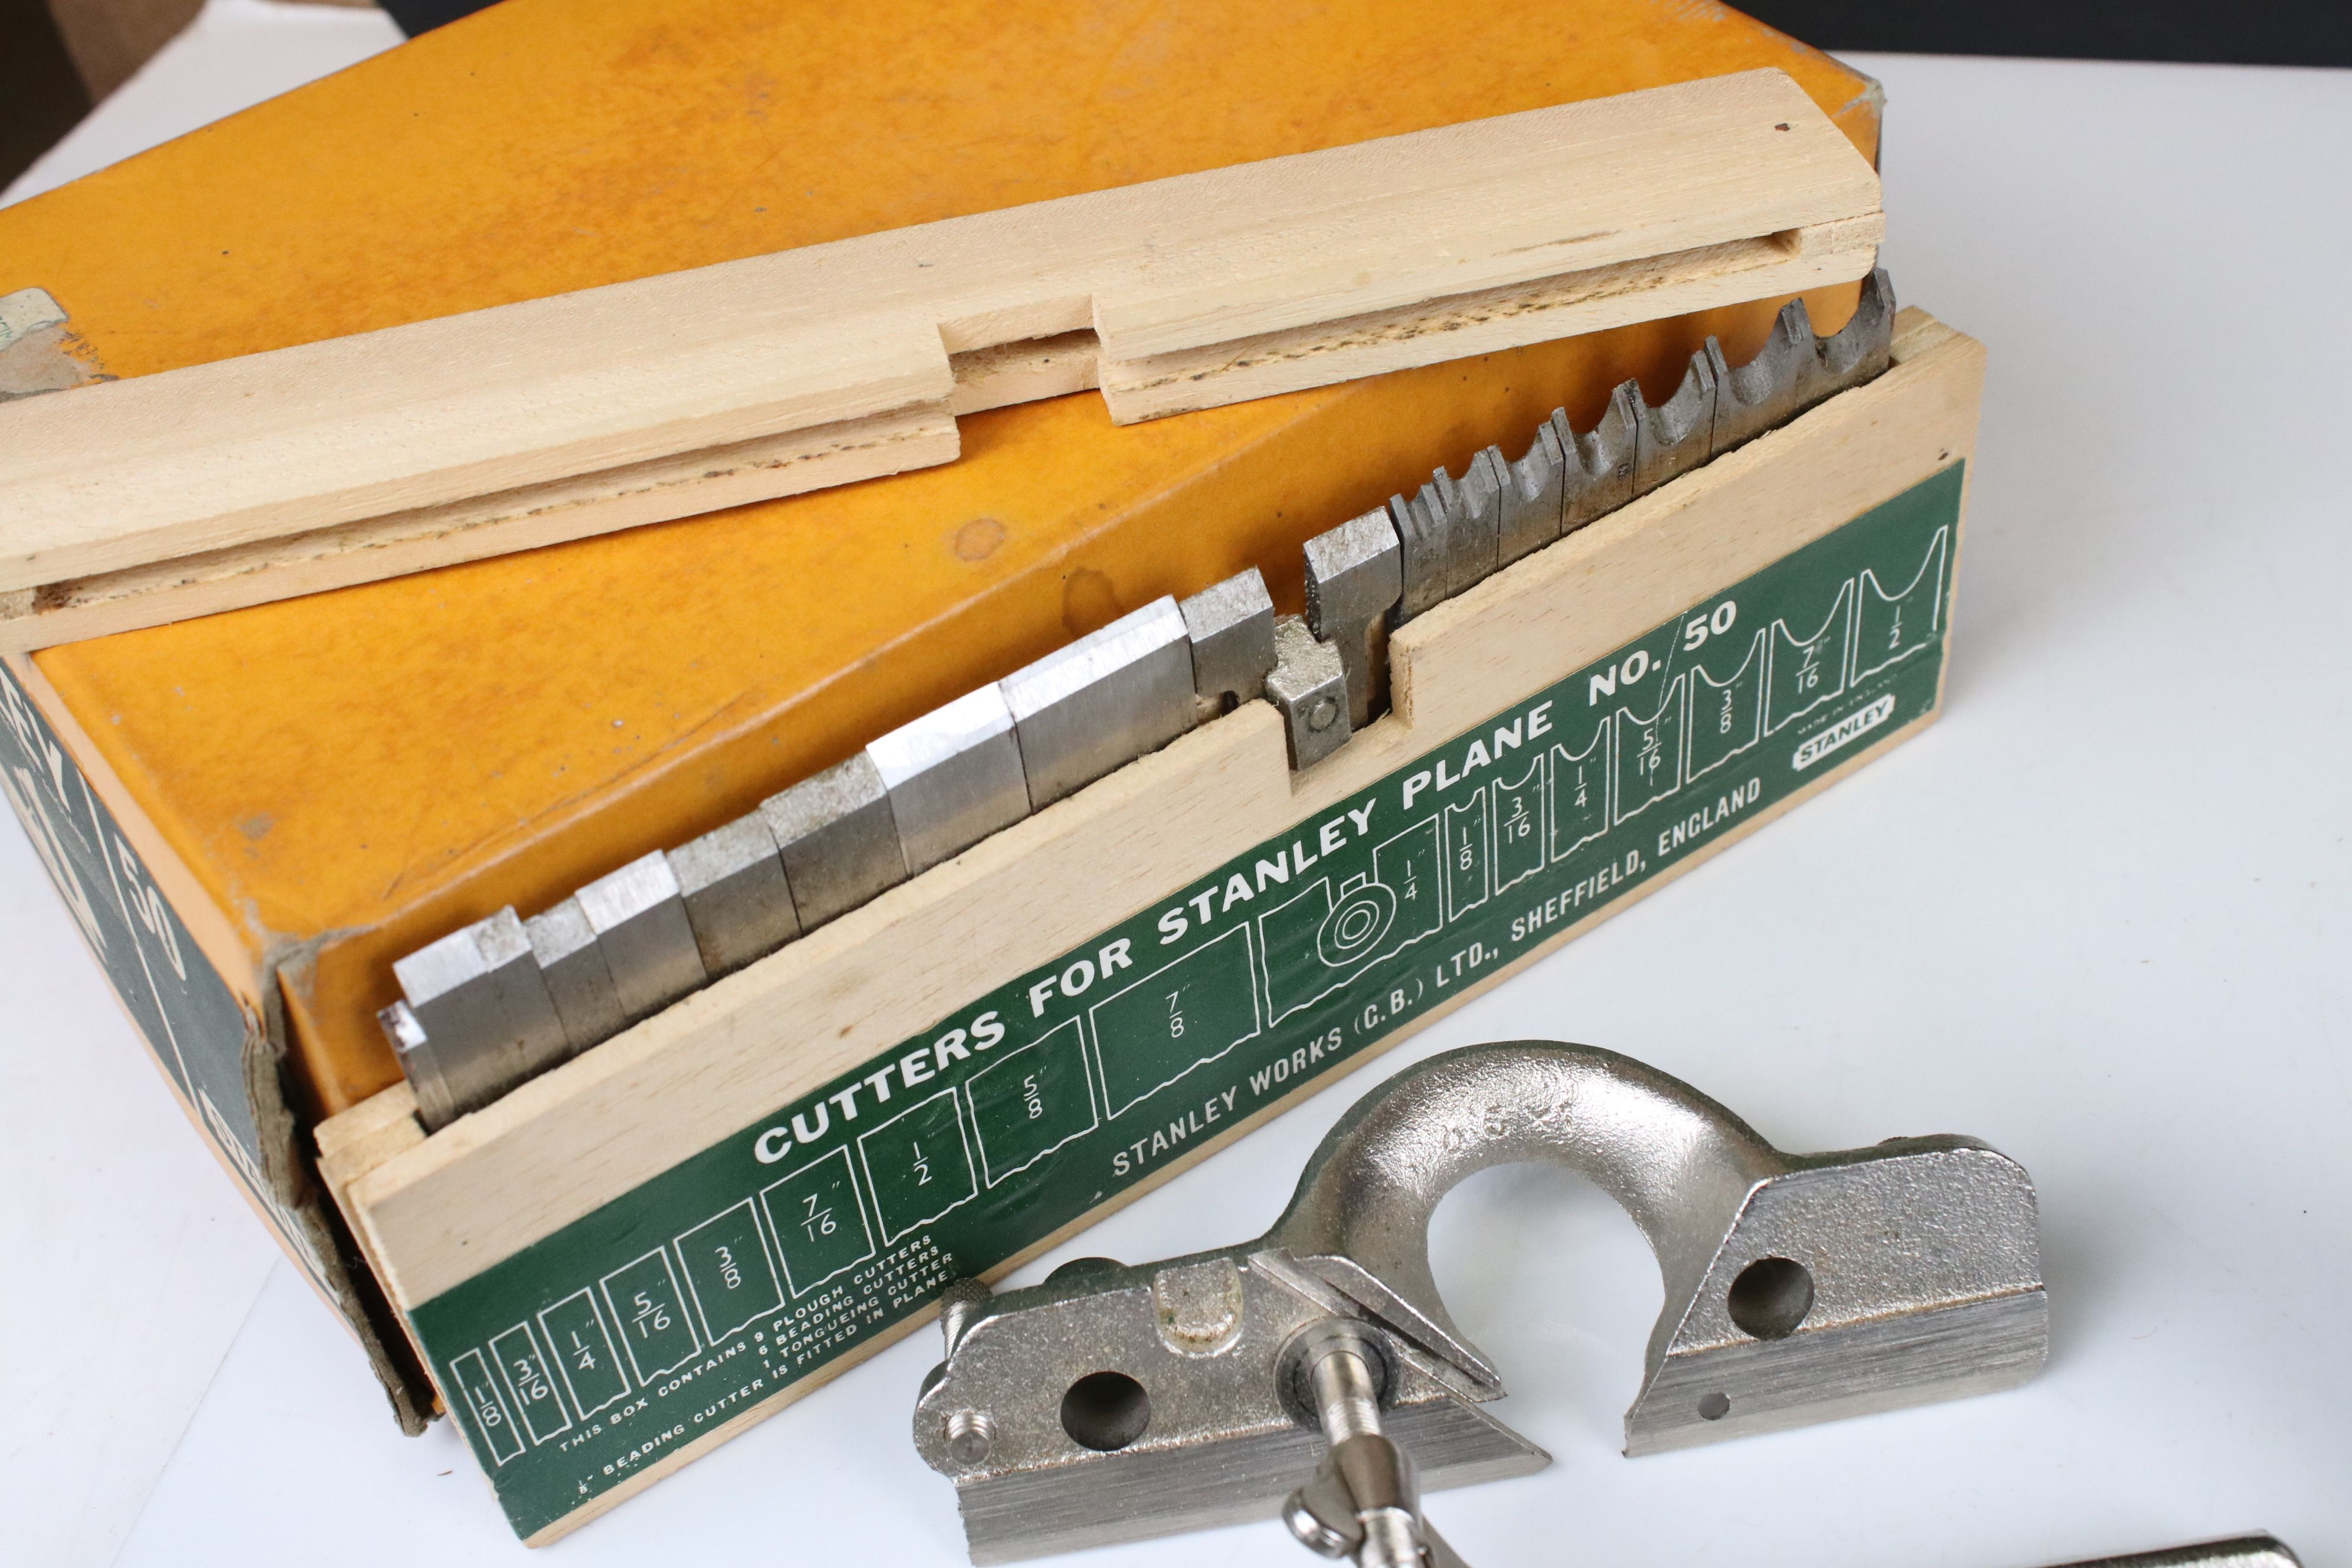 Boxed Stanley No. 50 Combination Plane together with a Stanley No. 71 Router Plane - Image 4 of 7